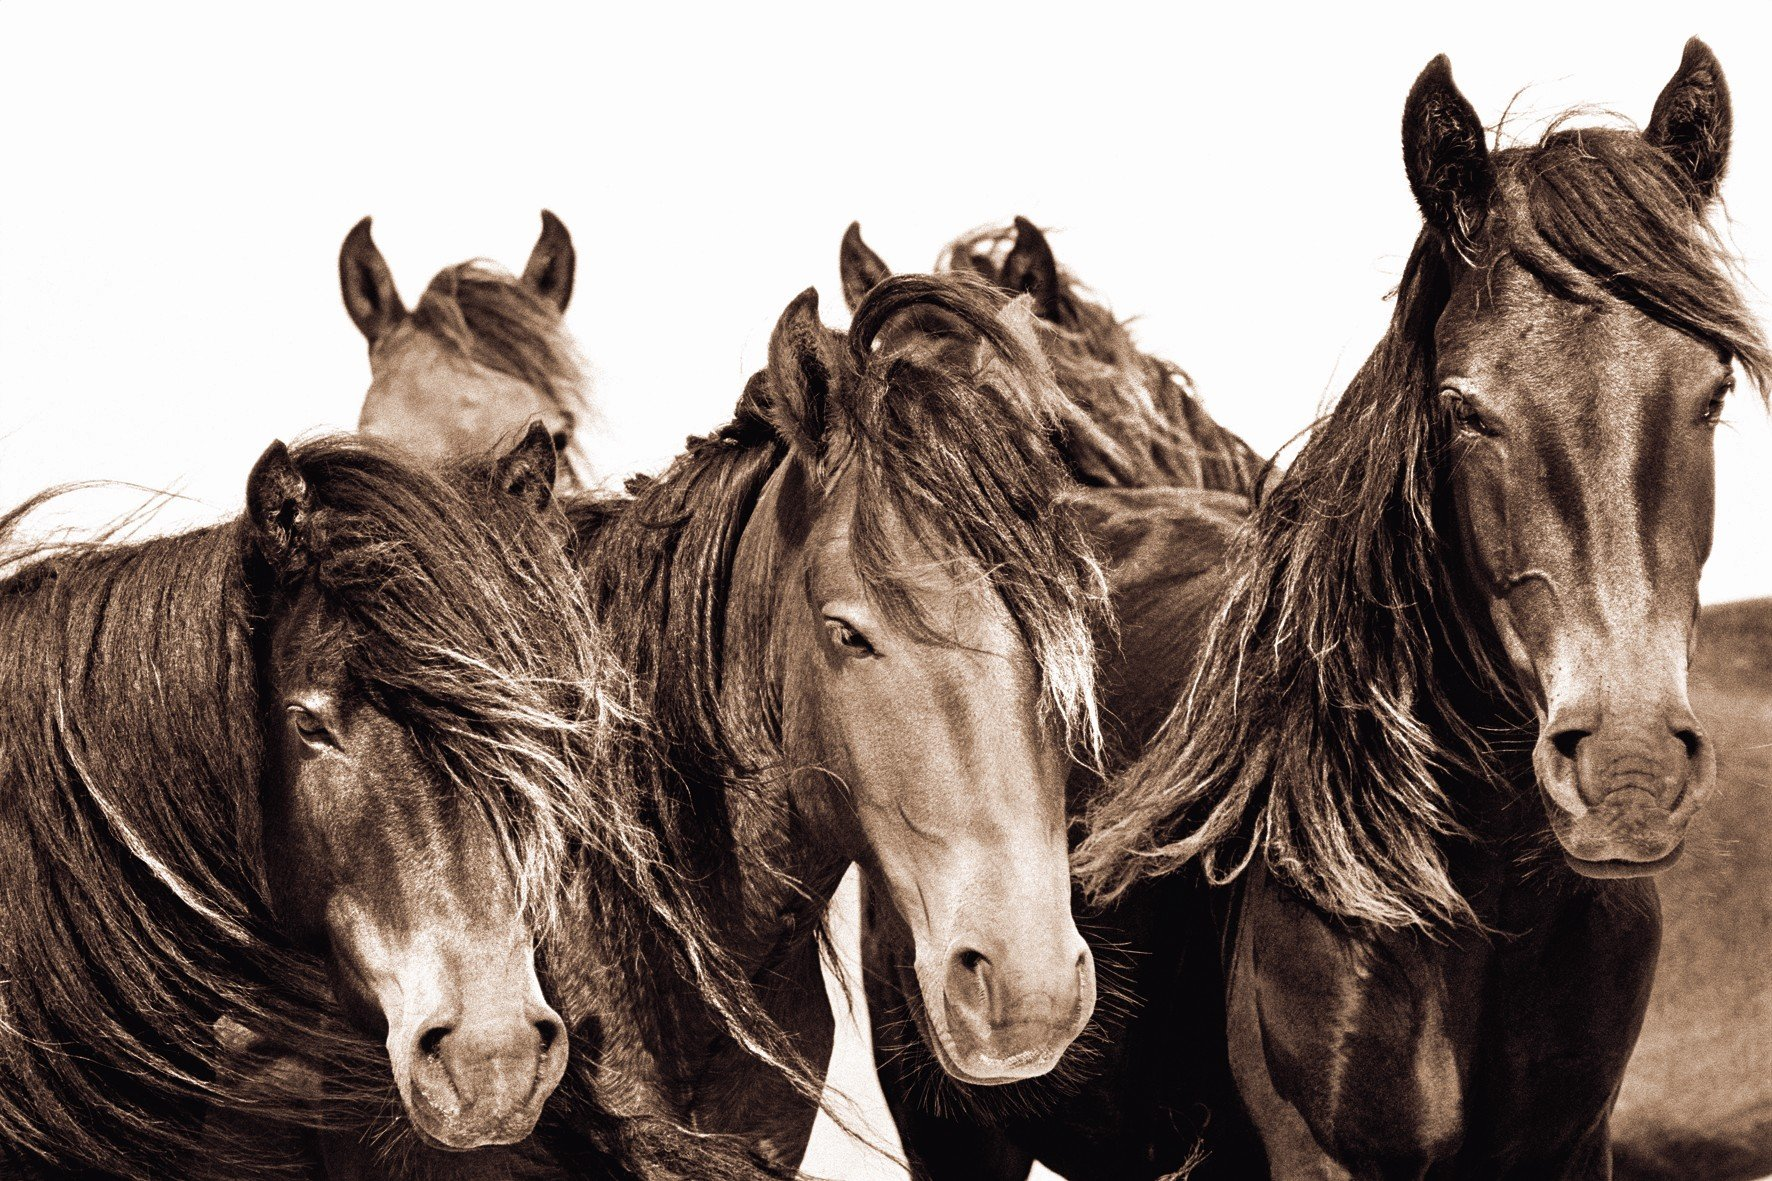 What is the smallest breed of horse?